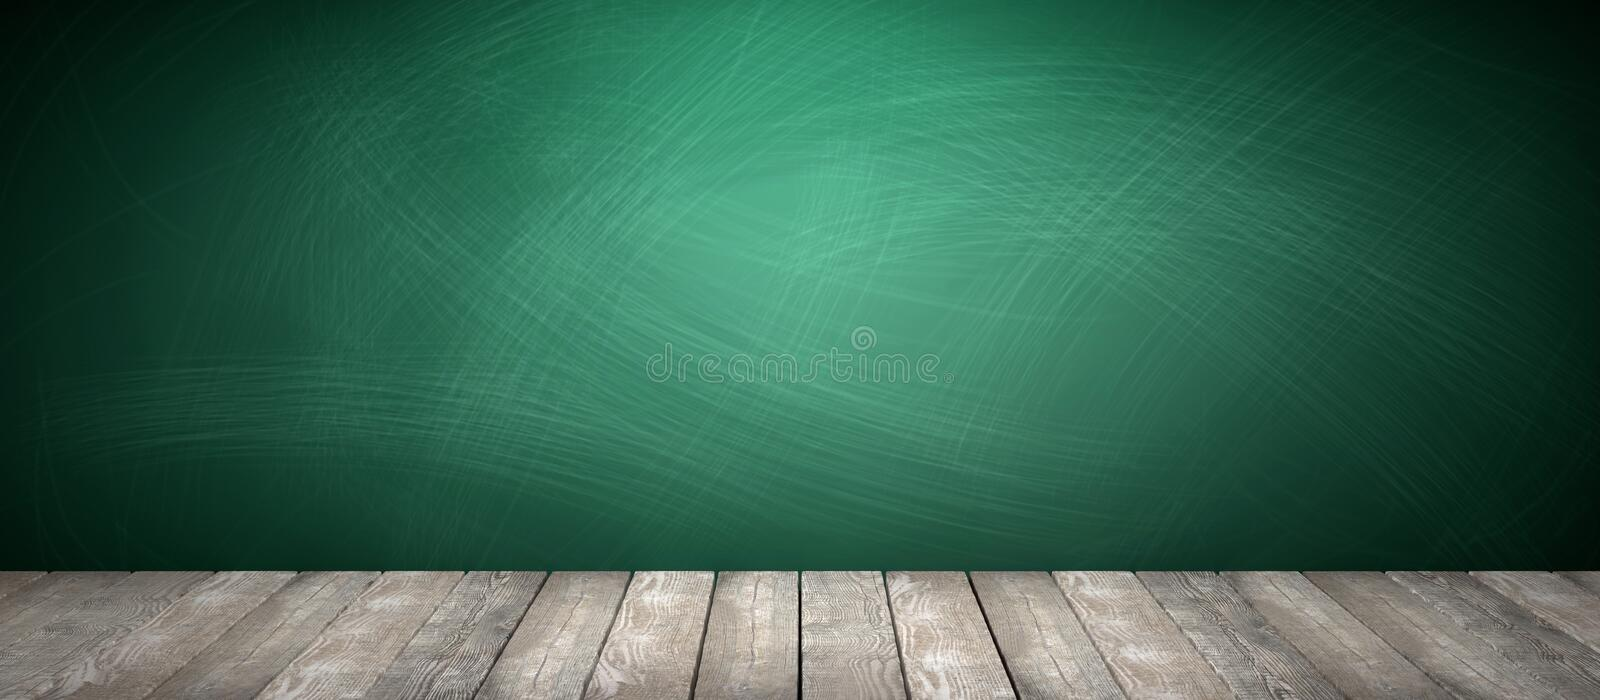 Rubbed out chalk on a greenboard, wooden floor royalty free stock images